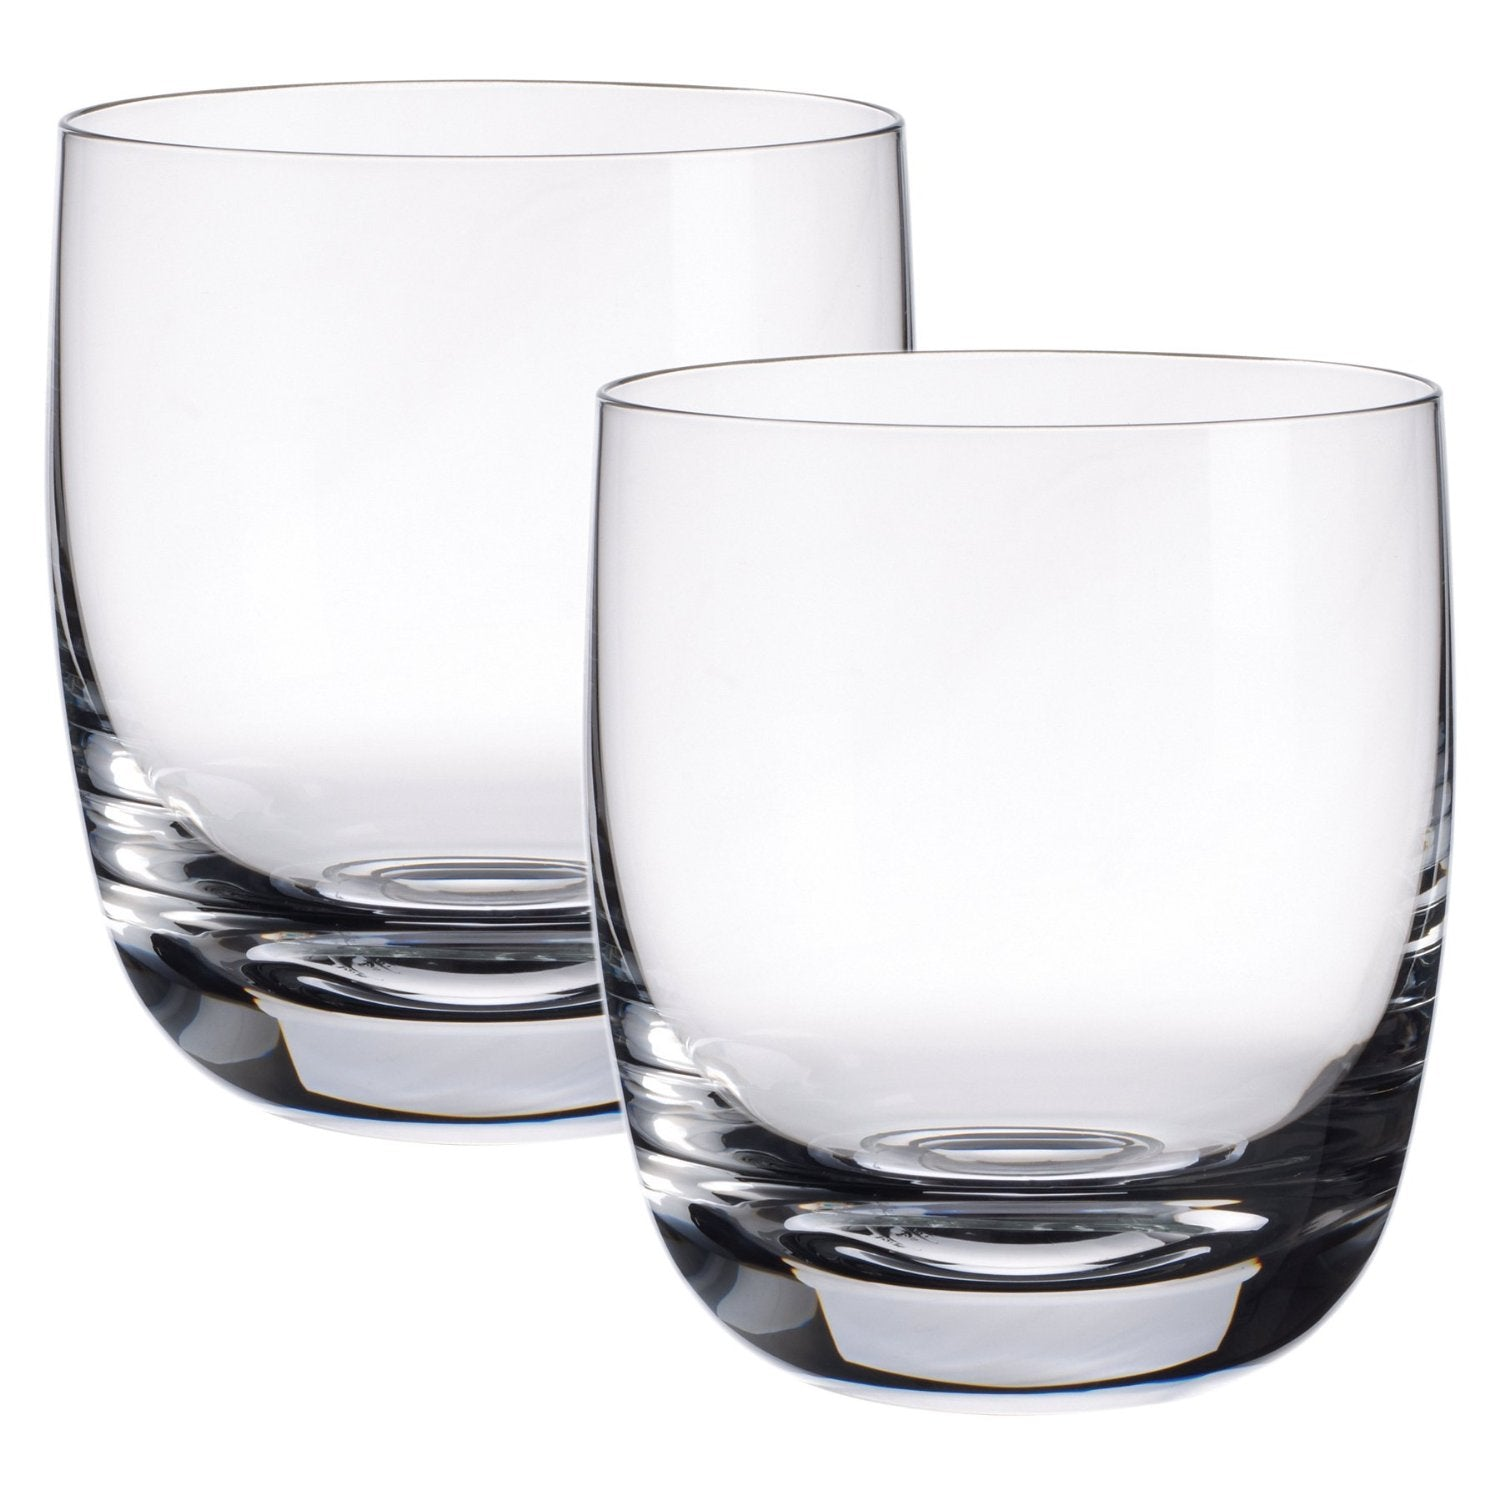 Villeroy & Boch Scotch Whiskey Blended Scotch 3-3/4-Inch Tumbler No 2, Set of 2